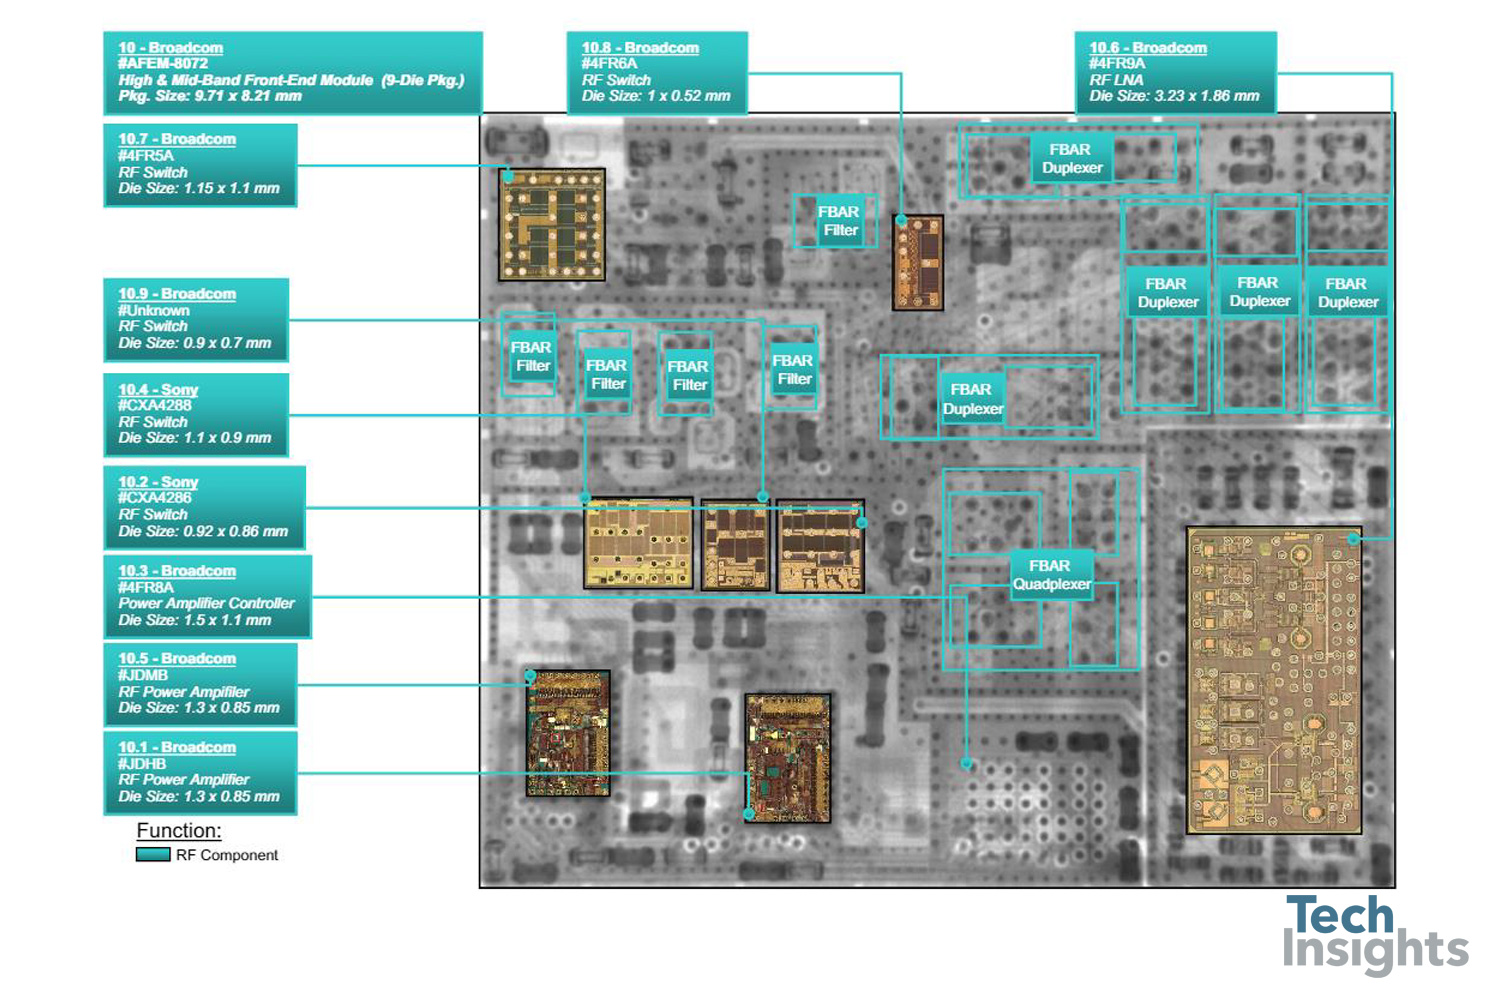 The Broadcom/Avago AFEM-8072 integrates multiple RF components